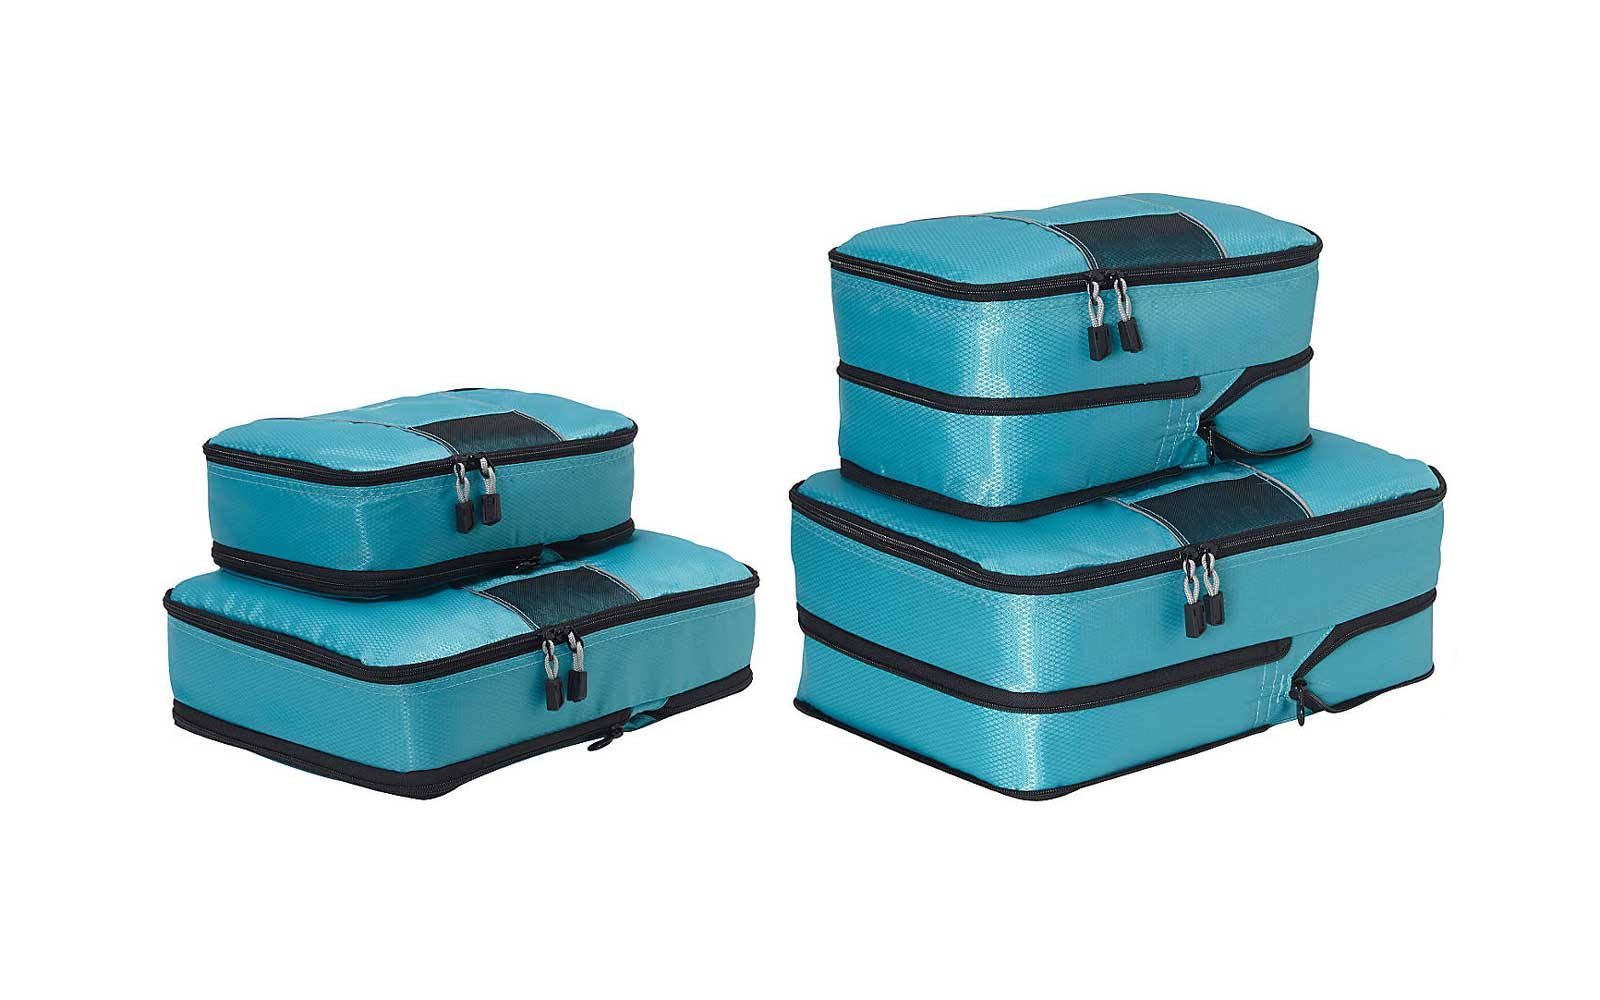 aab5ee931d3e The Best Packing Cubes for Travel | Travel + Leisure